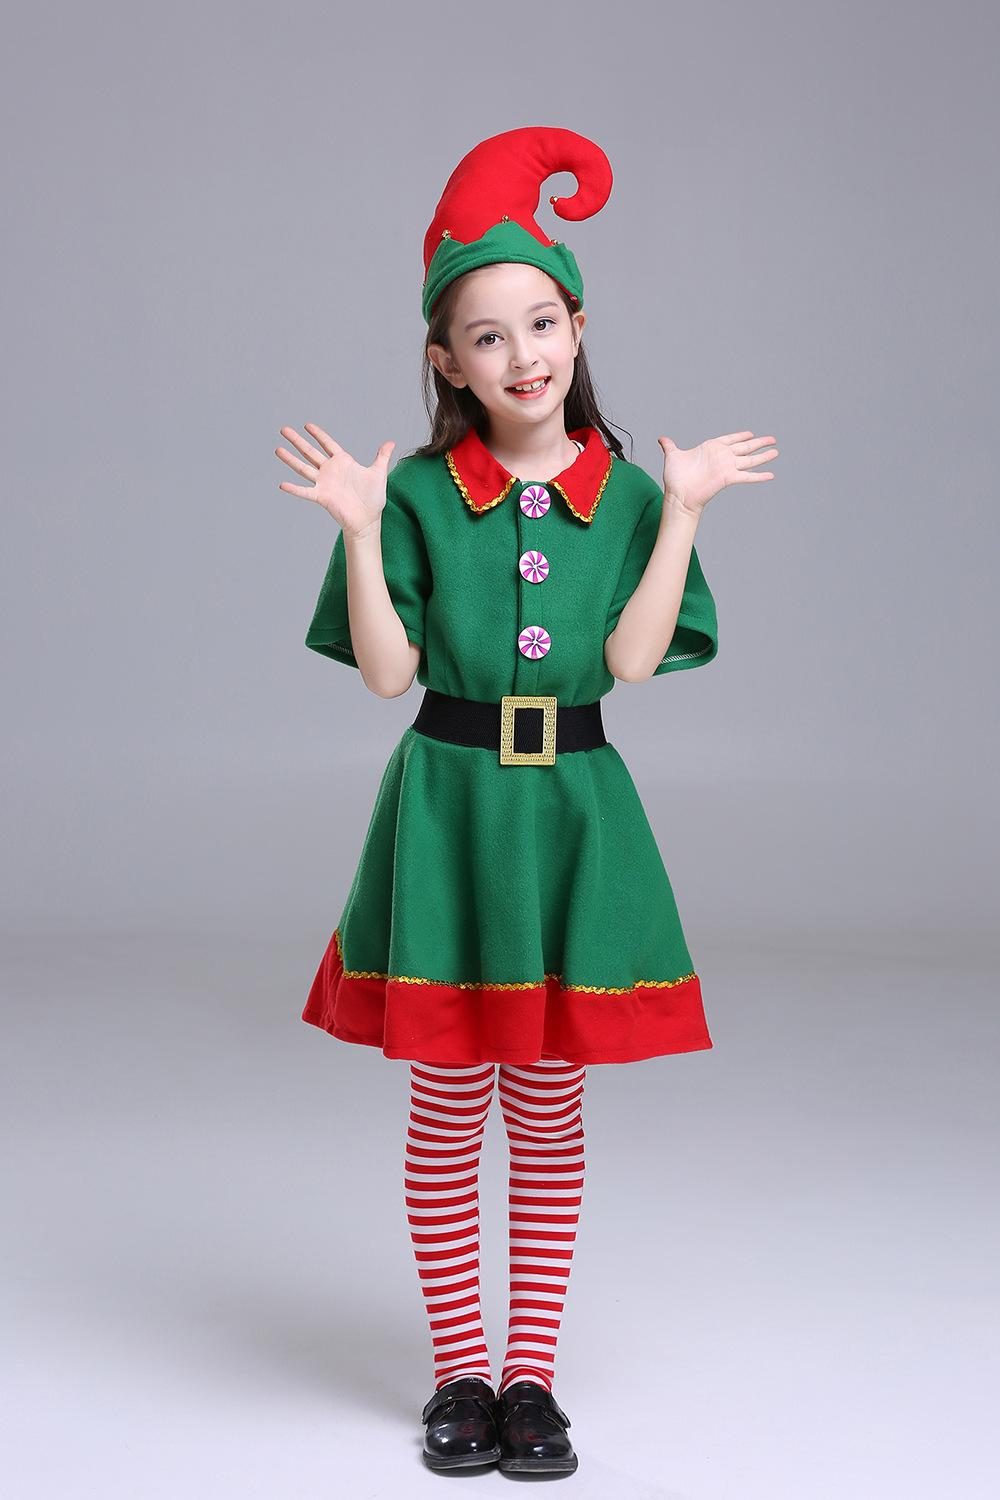 Clothing Sets Christmas Costume Childrens Christmas Elf Costume Cosplay Parent Child Costume Festival Adult Men and Women Green Christmas